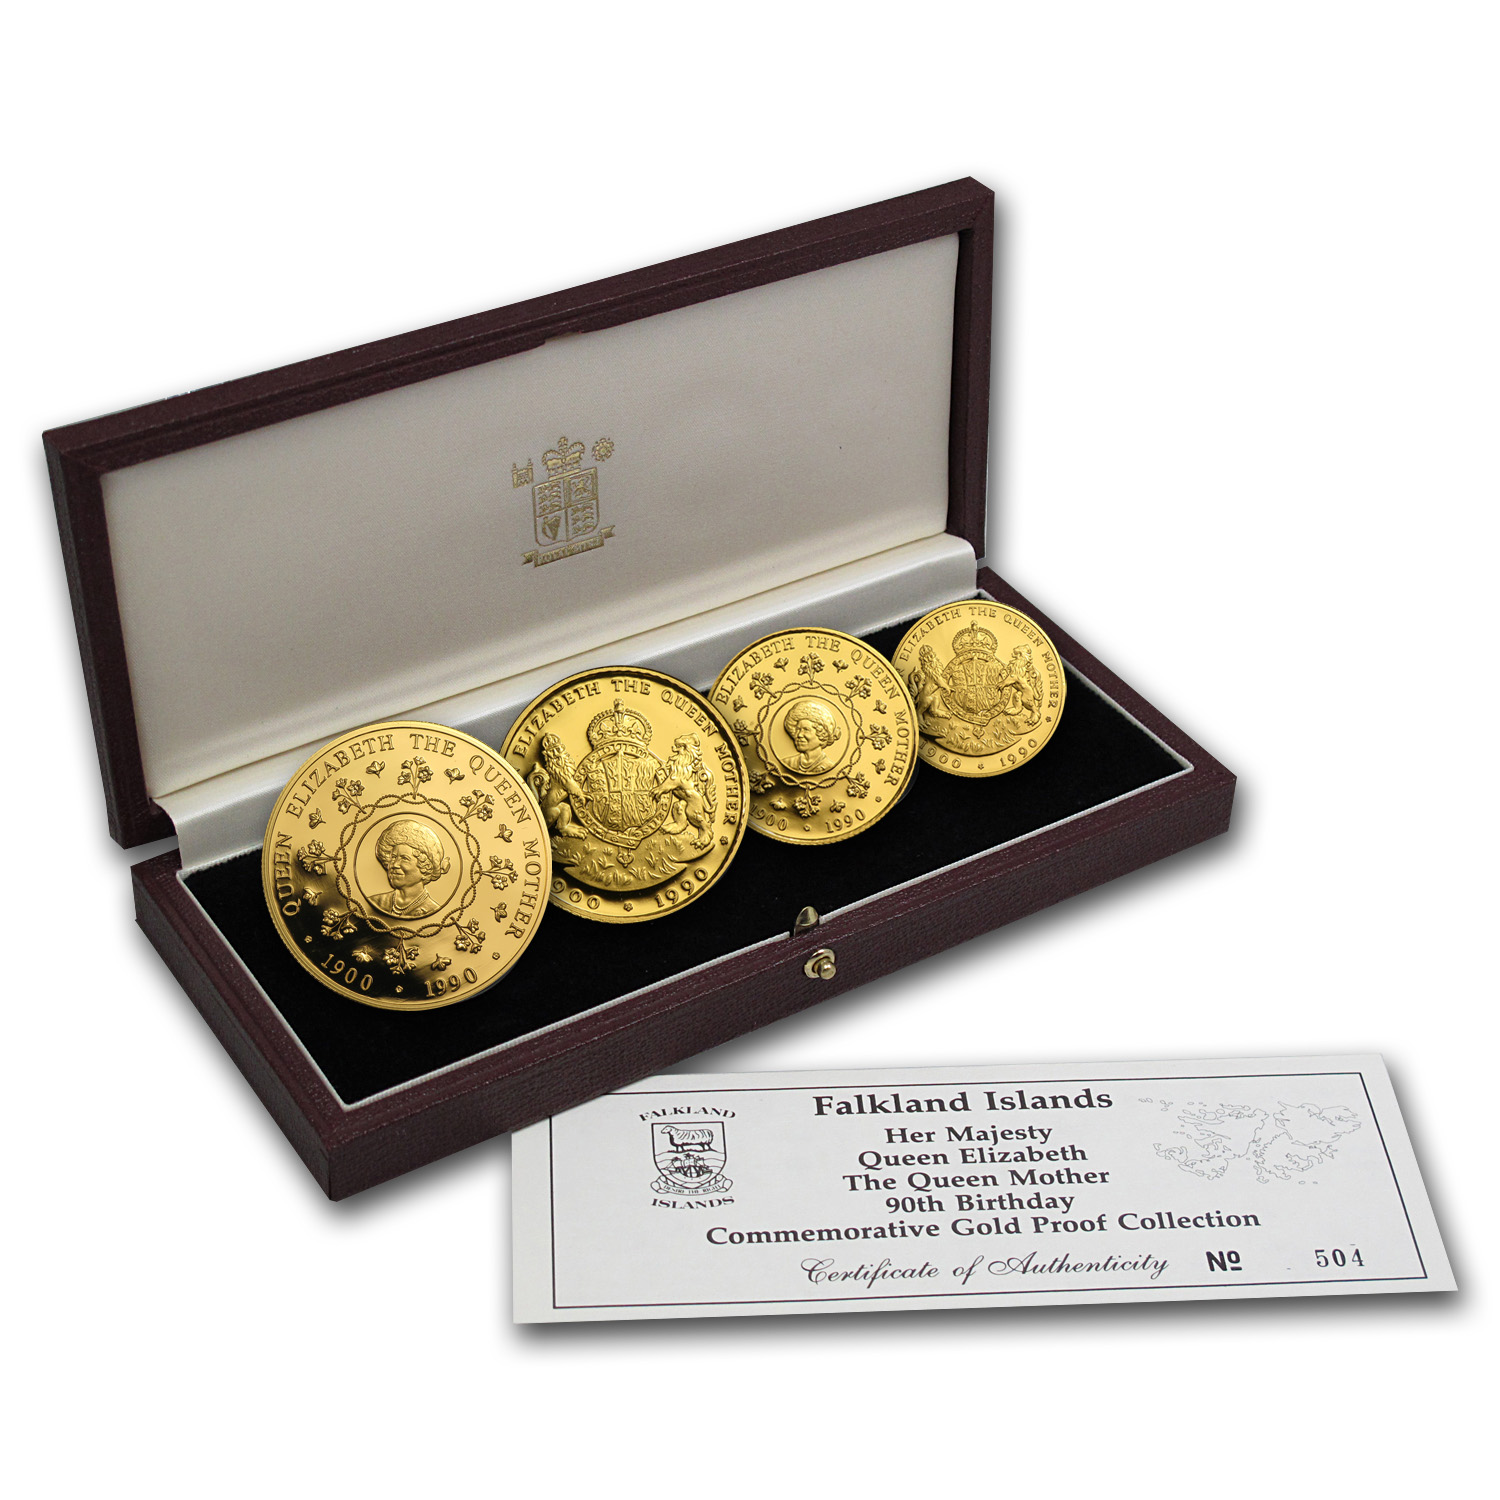 Falkland Islands 1990 Gold Proof 4 Coin Set Queen Mother